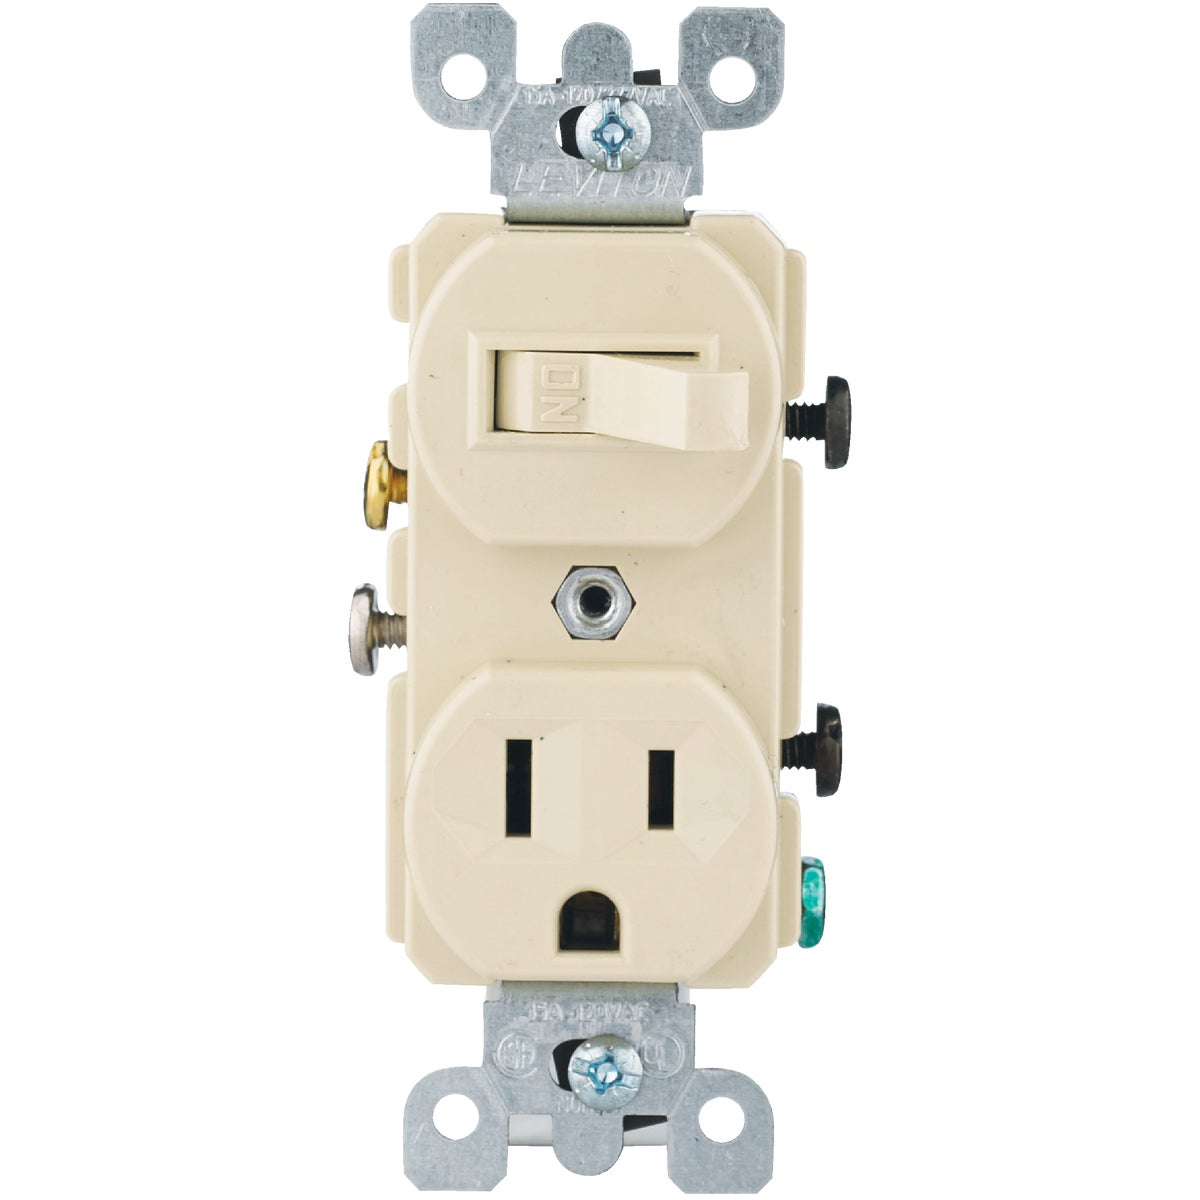 IV OUTLET SWITCH